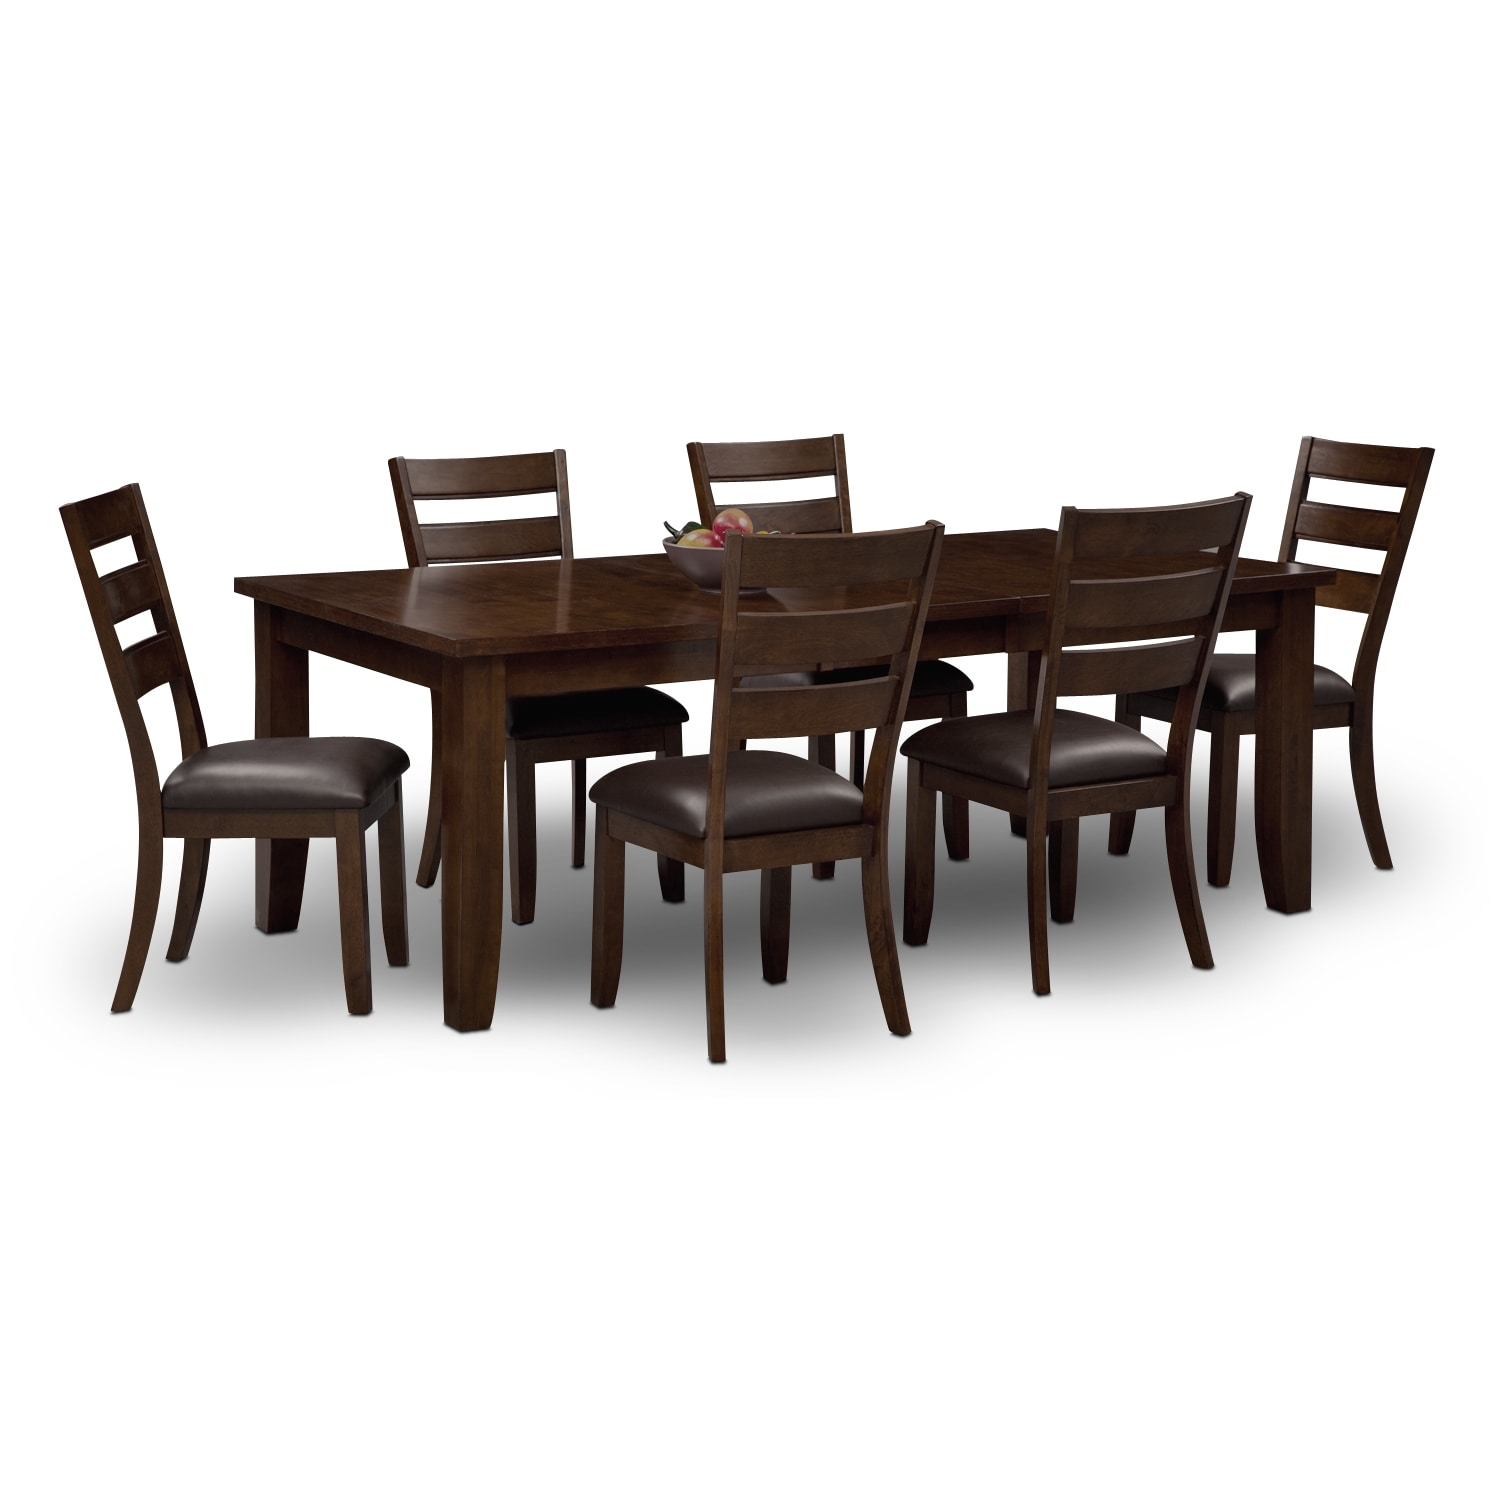 shop for 7 piece dining rooms 4 person kitchen table Abaco Table and 6 Chairs Brown